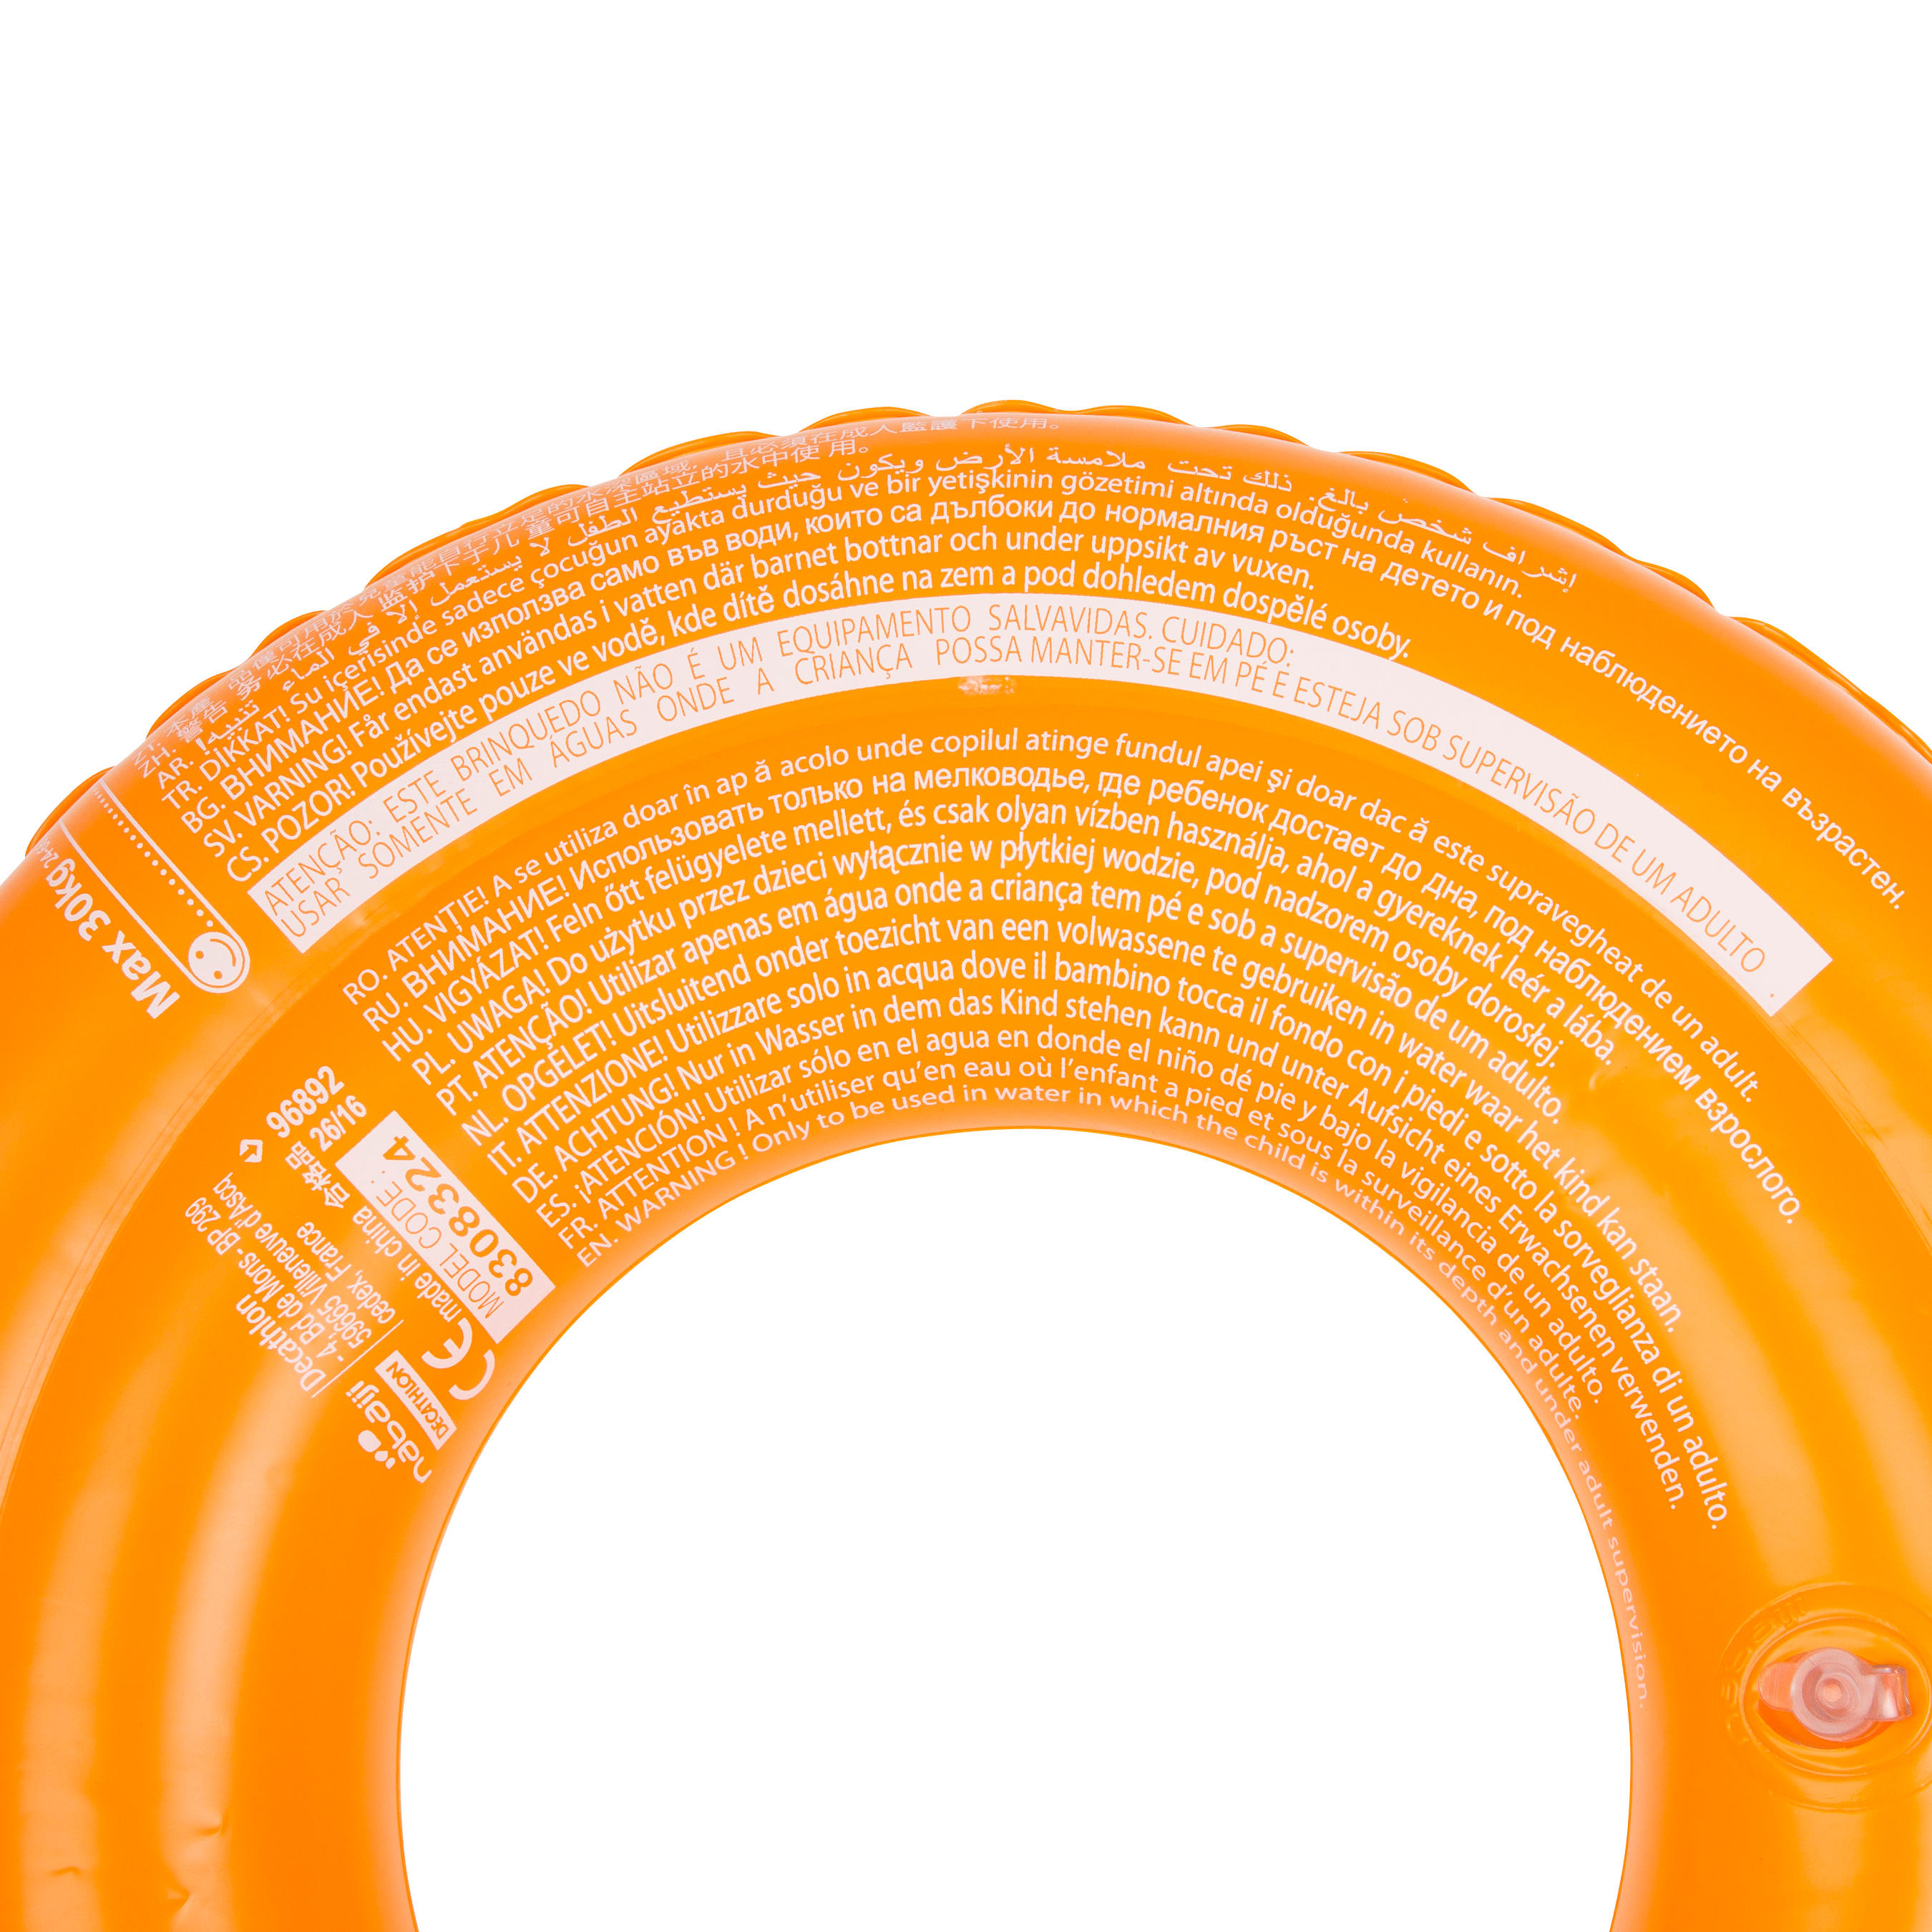 Orange iInflatable swim ring 51 cm for children of 3 to 6 years